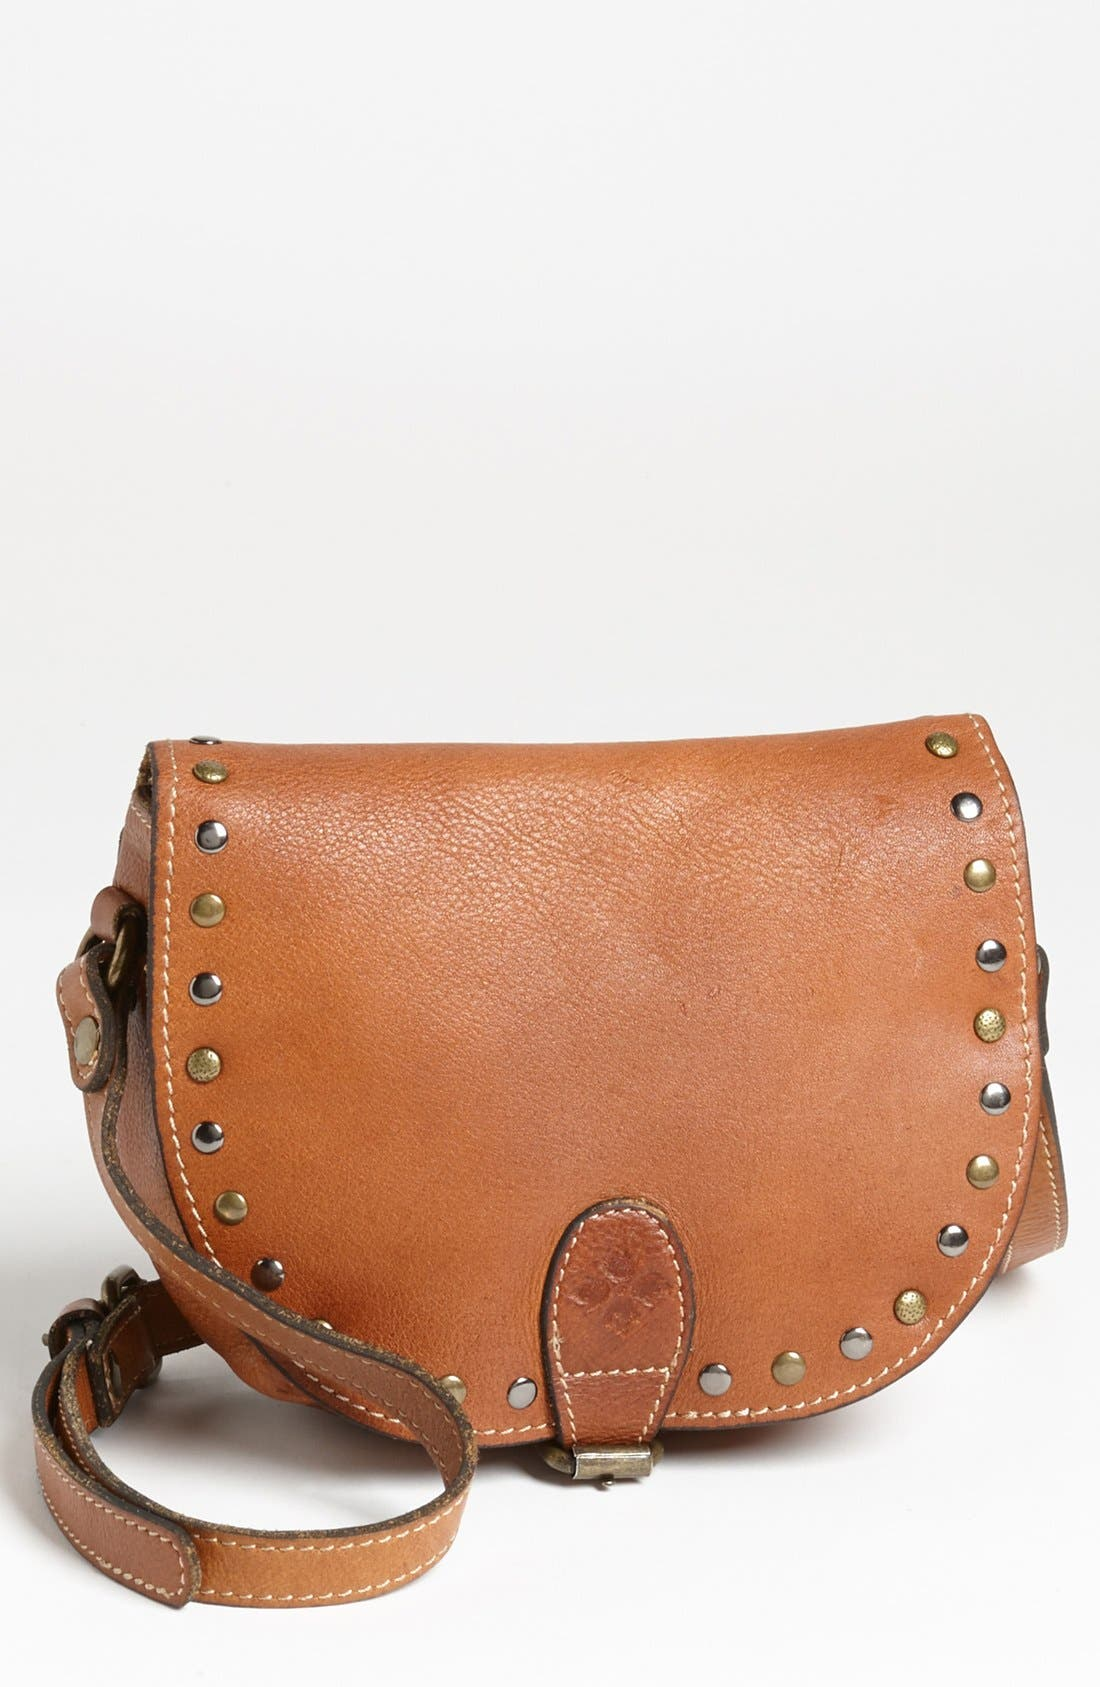 Main Image - Patricia Nash 'Isola - Small' Leather Crossbody Bag